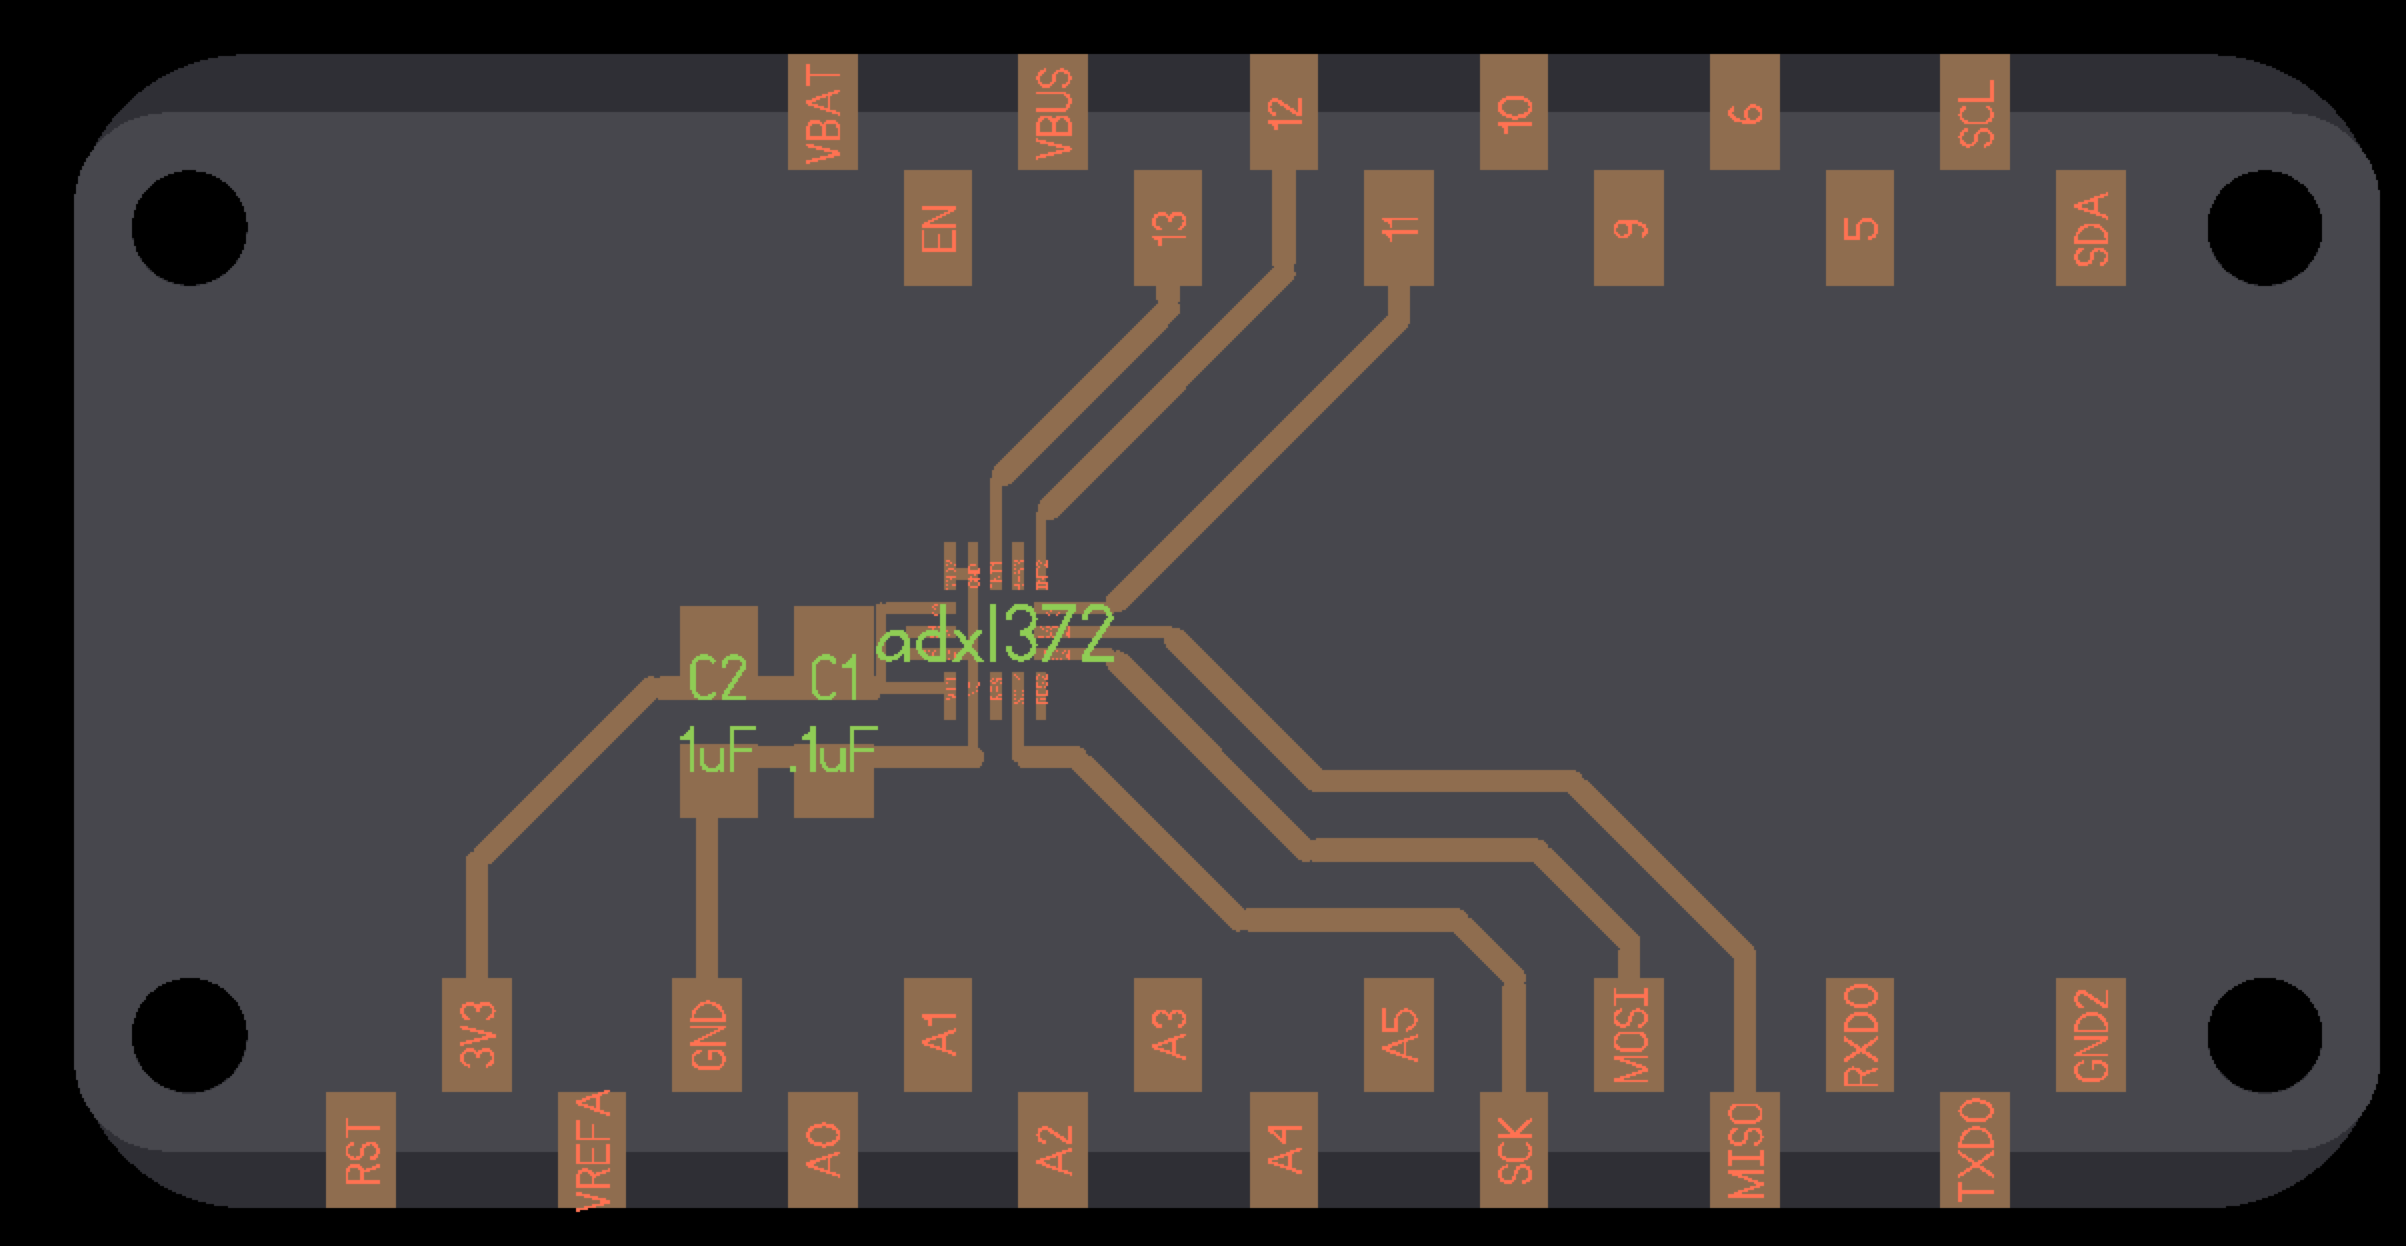 pcb/adxl372-adalogger-layout.png